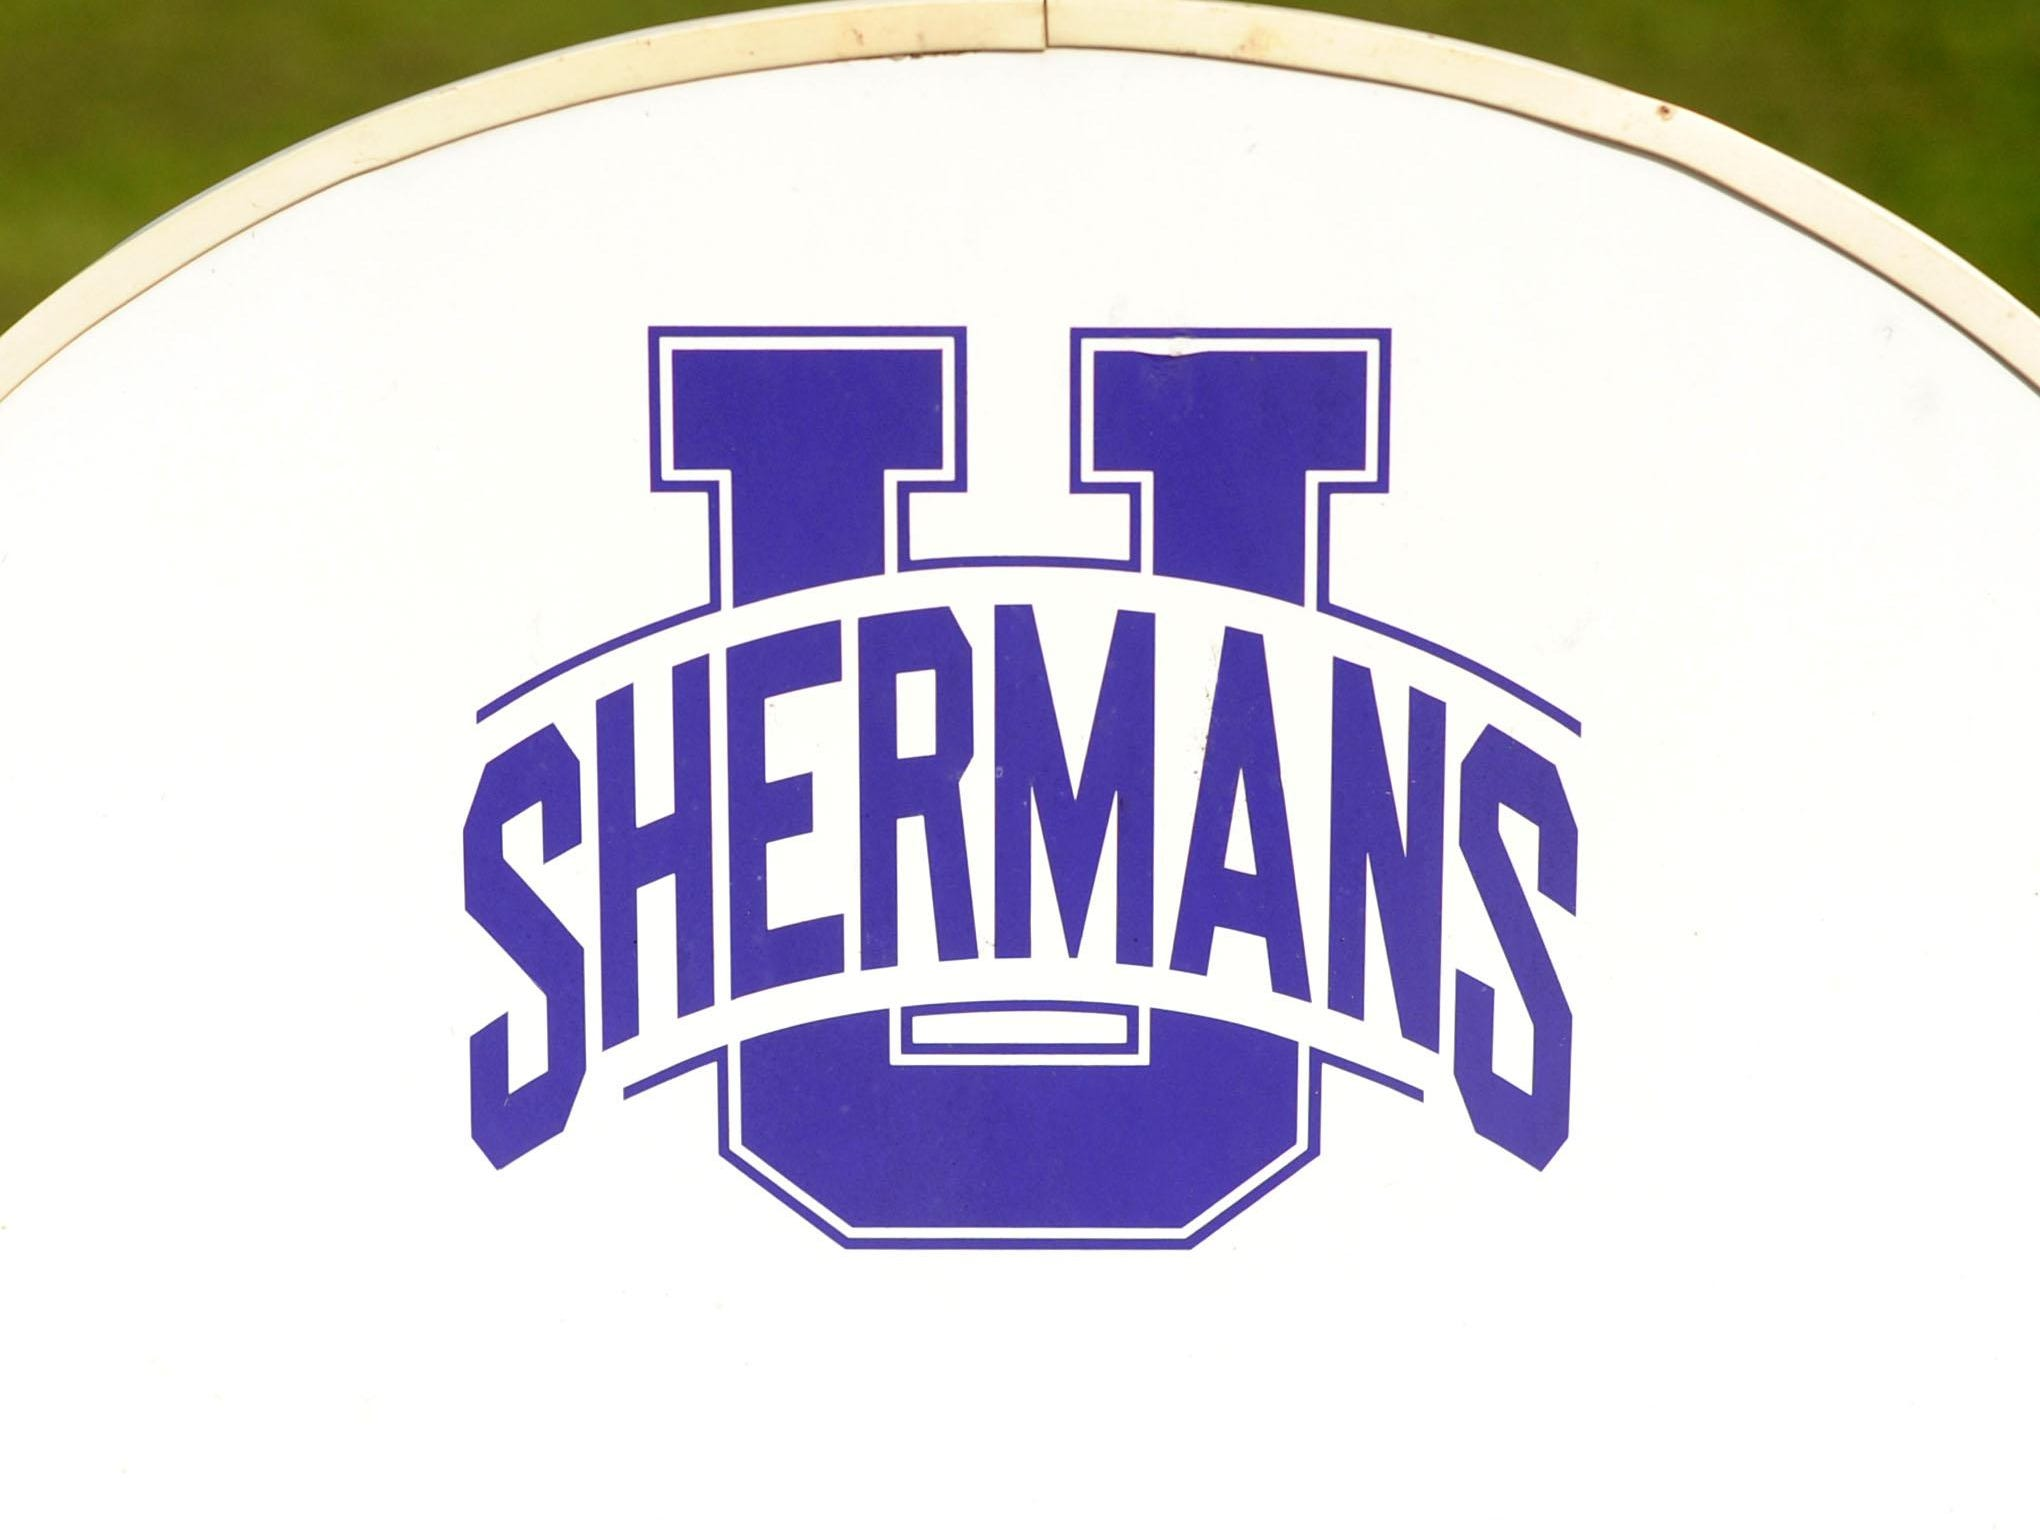 Unioto High School Shermans